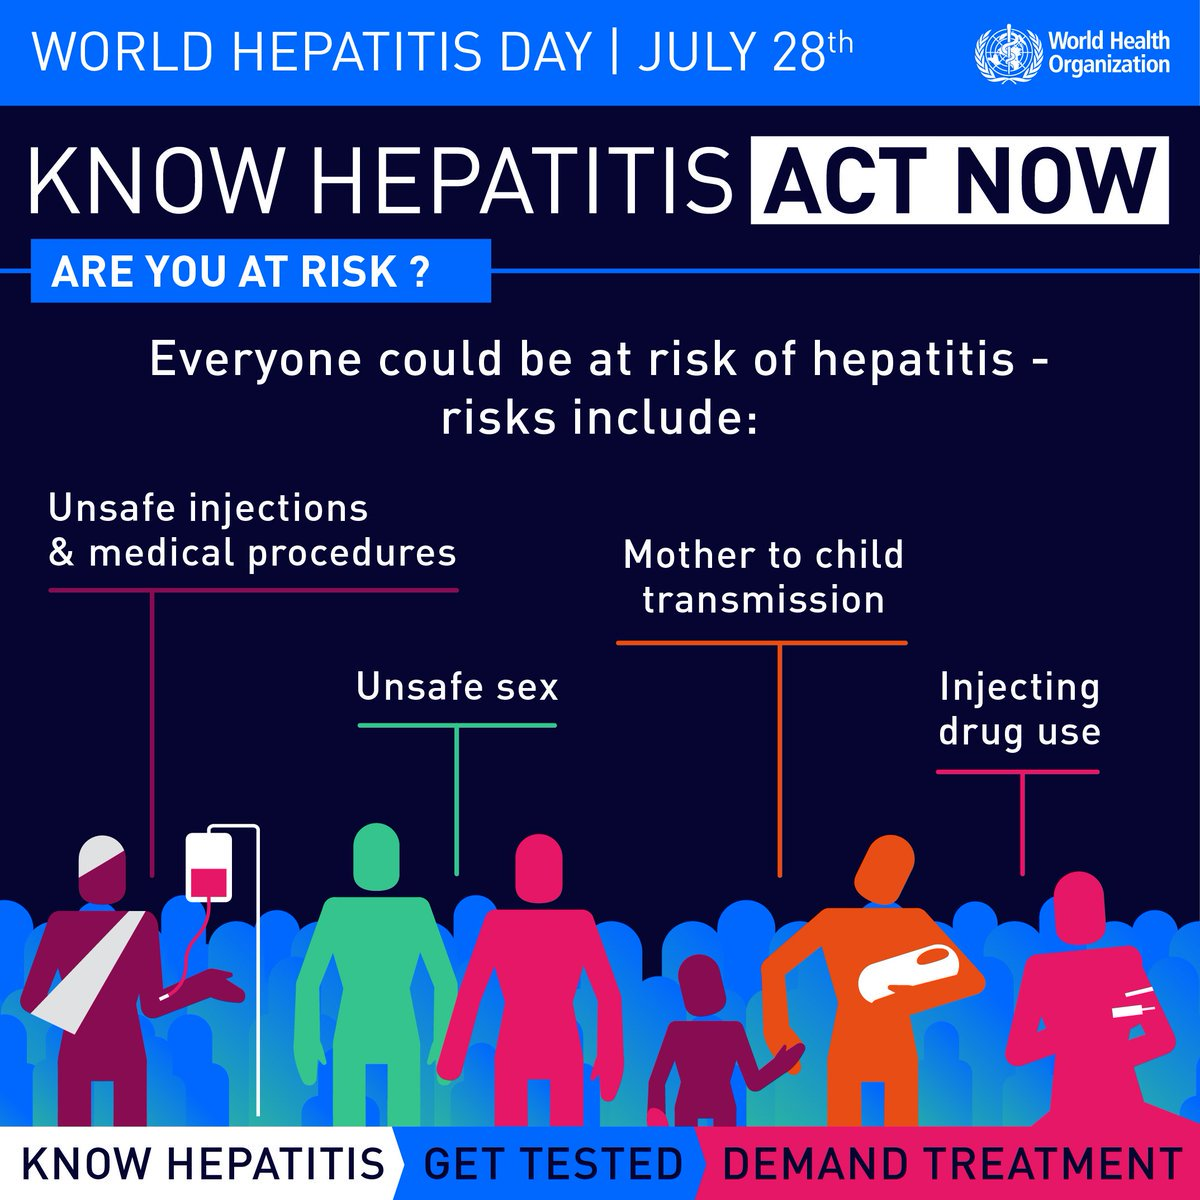 Know #hepatitis. Are you at risk?  https://t.co/teR2JO5edc